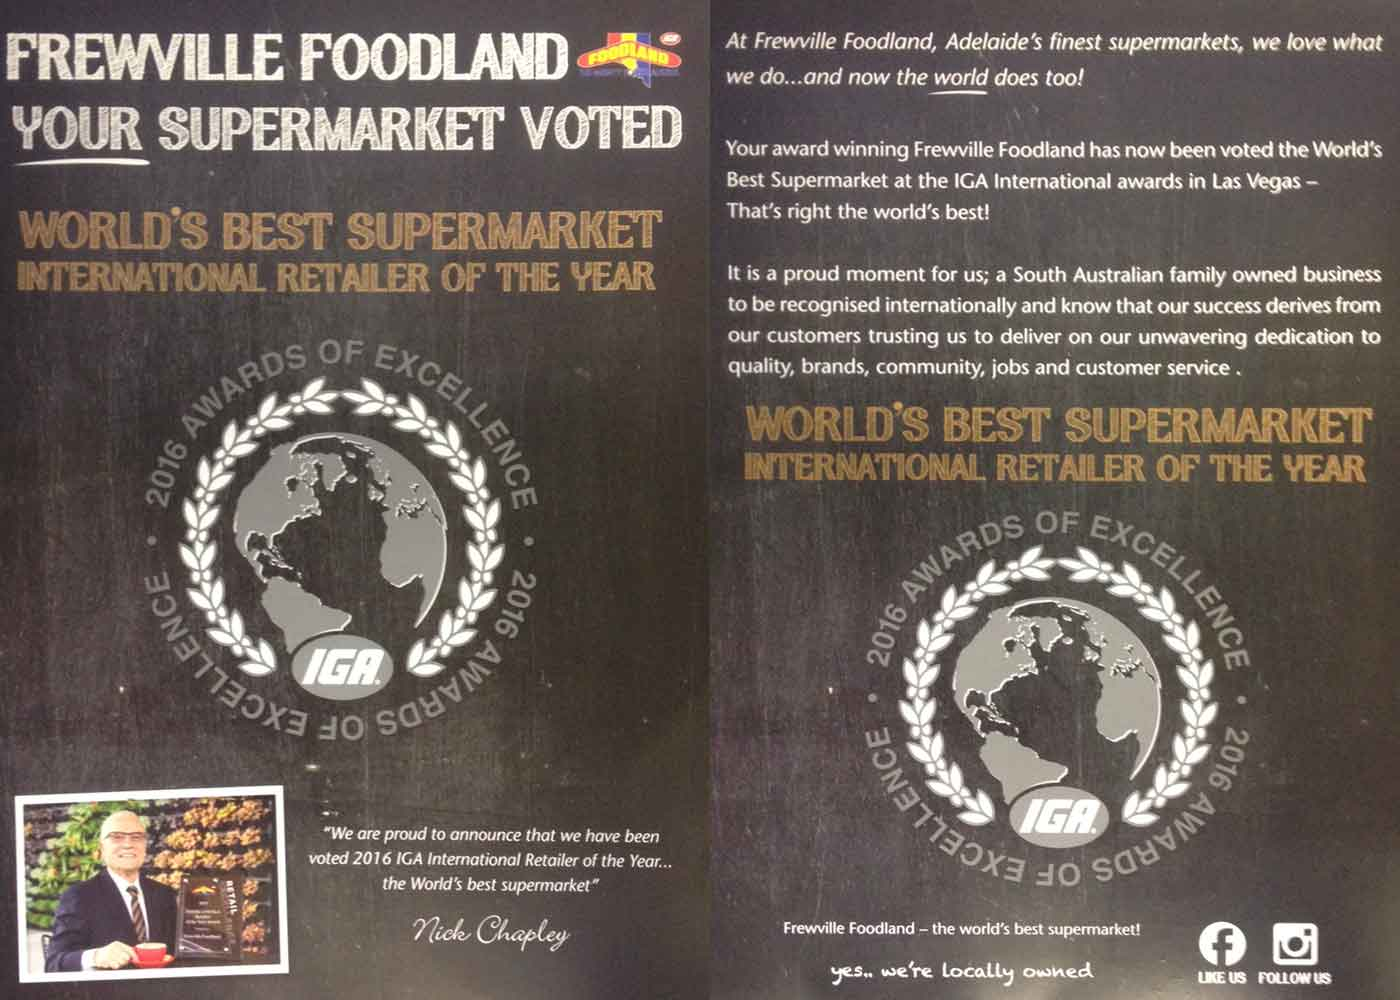 Best supermarket in the world Frewville Foodland win award